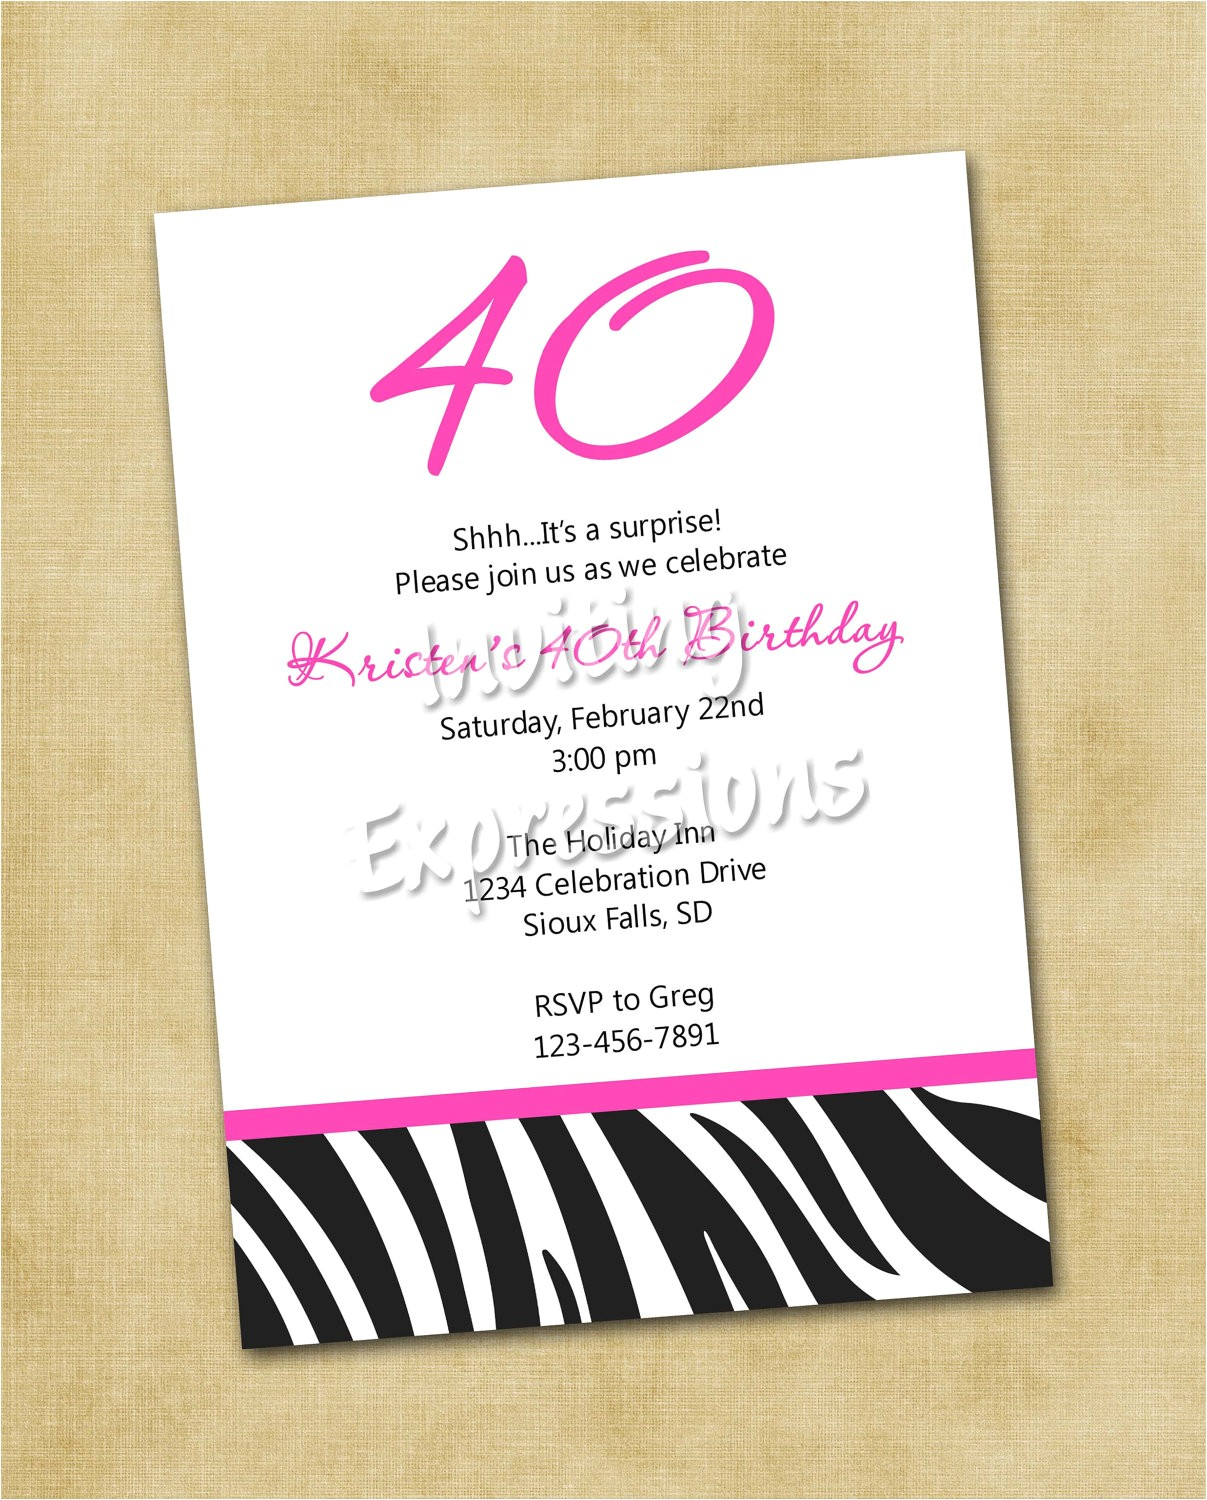 40th Birthday Invite Wording top 13 40th Birthday Party Invitation Wording